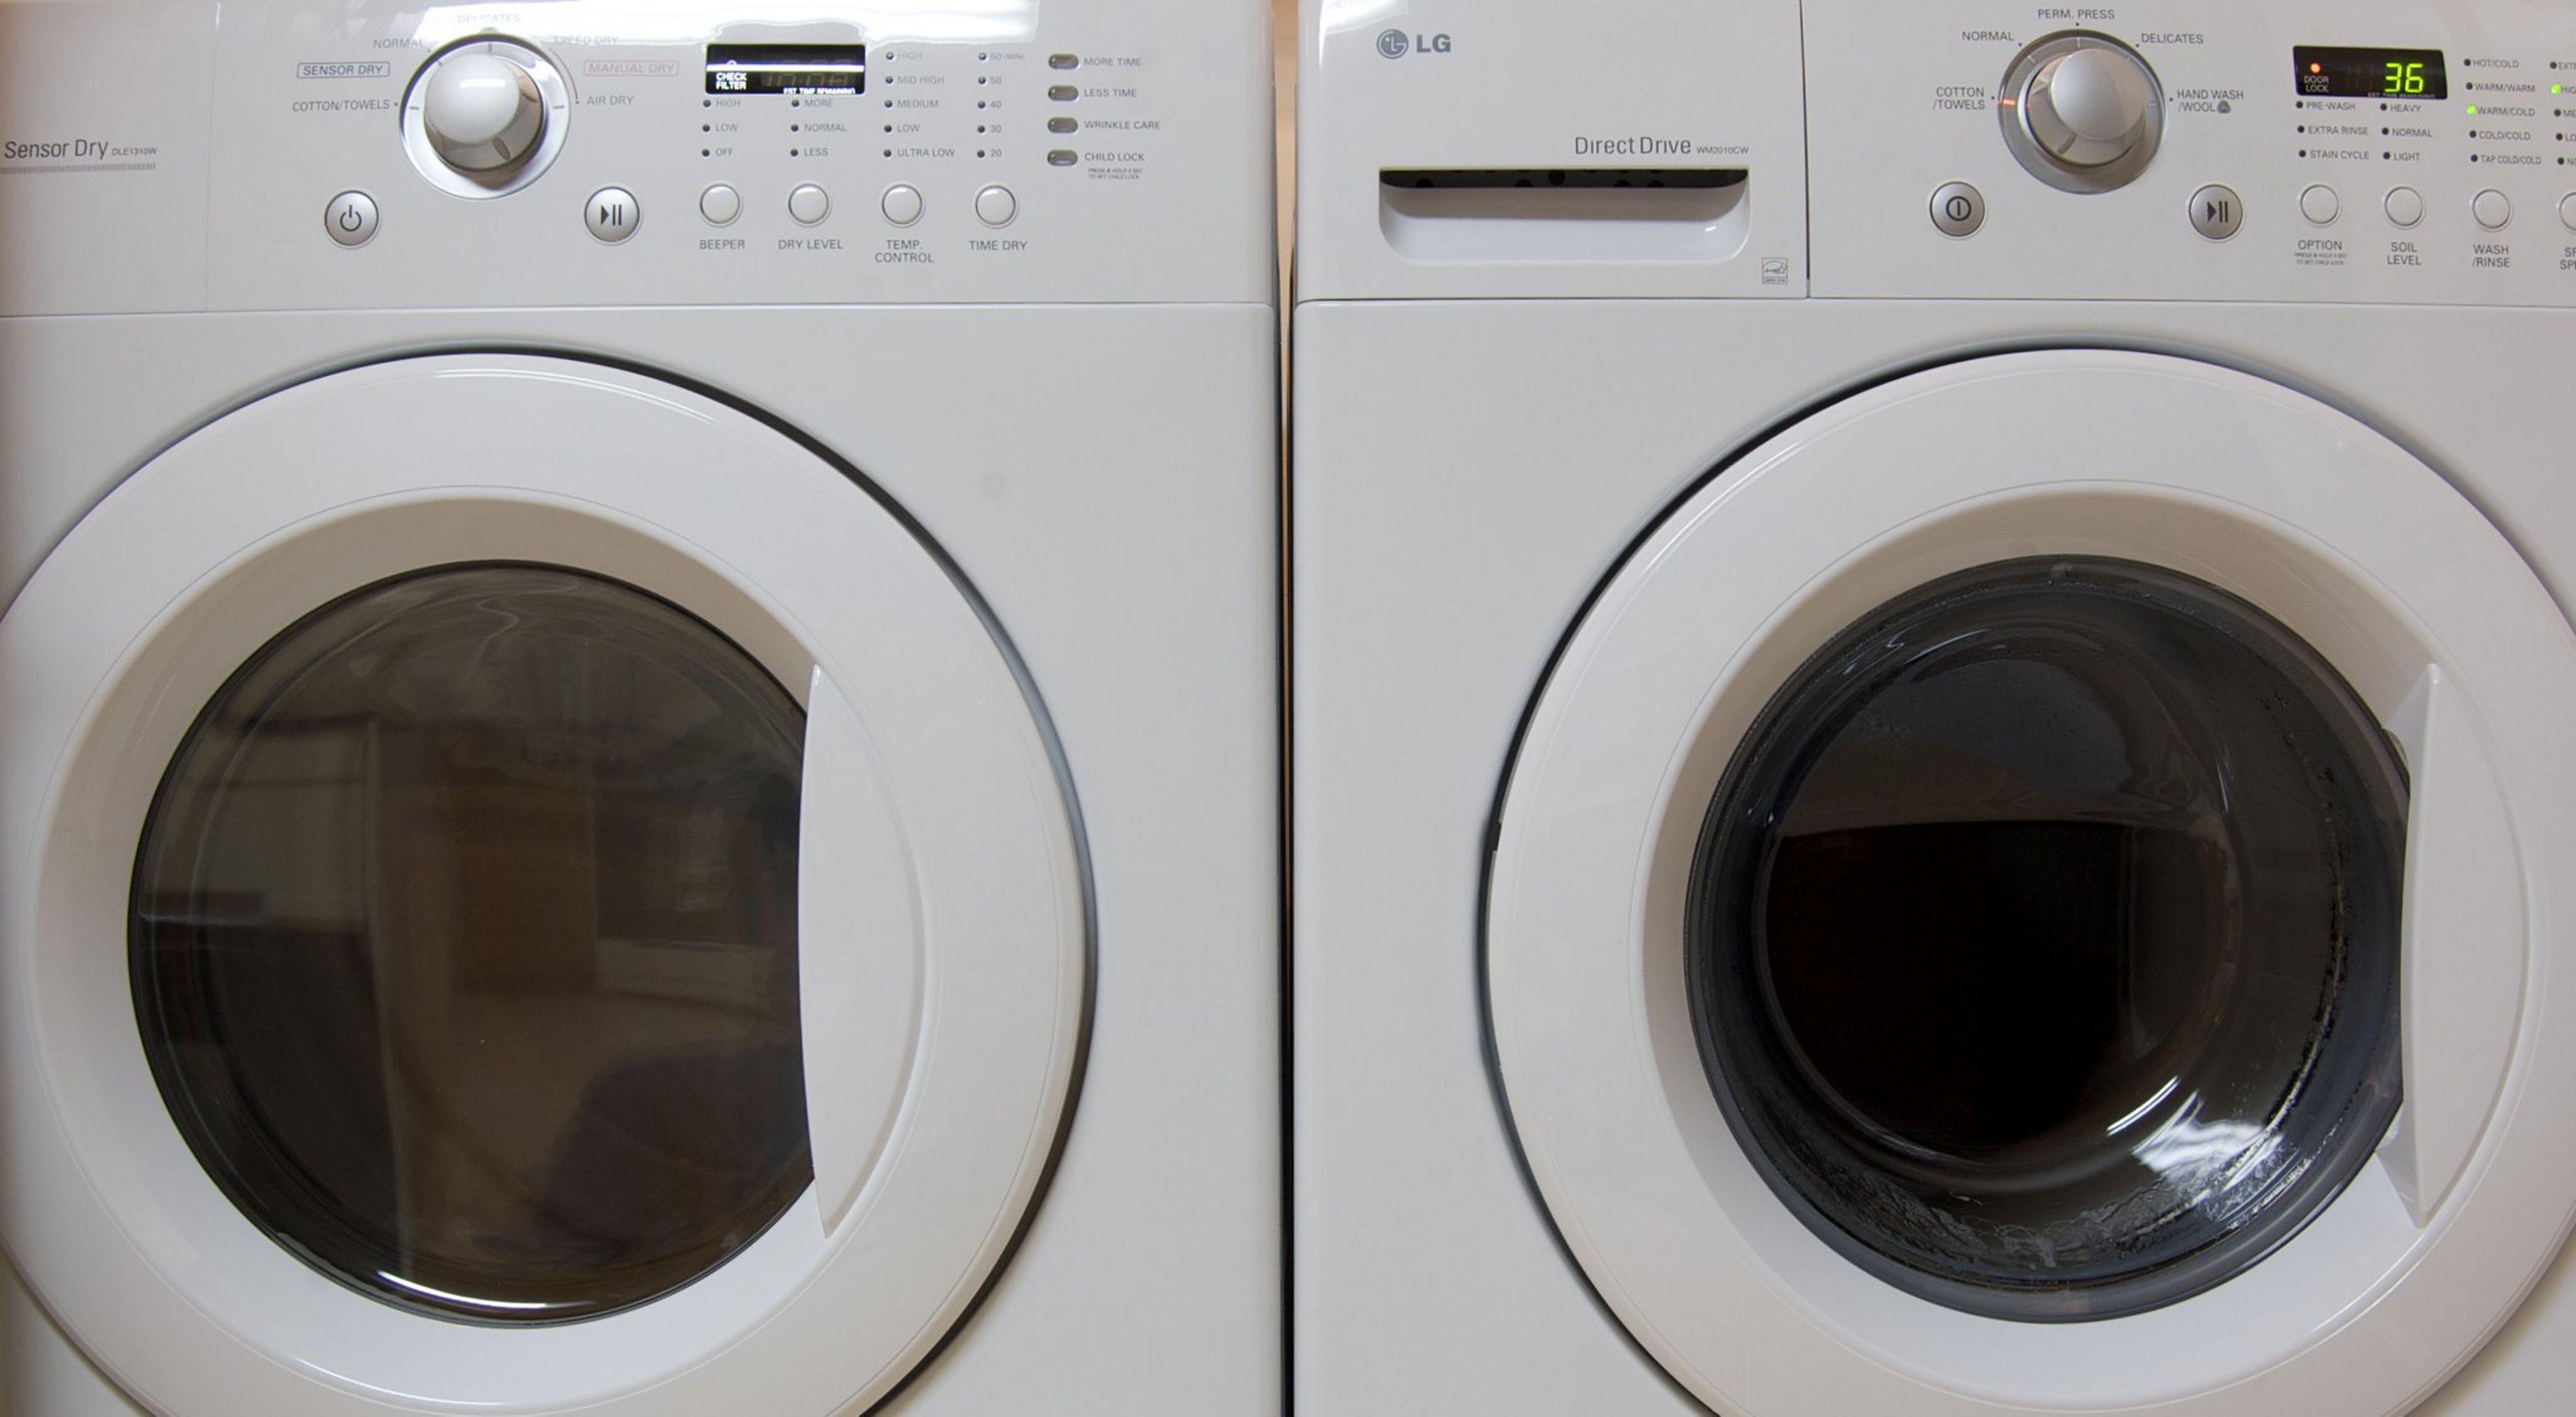 A study quantifying the amount of synthetic microfibers released into the environment from washing machines and wastewater in California.